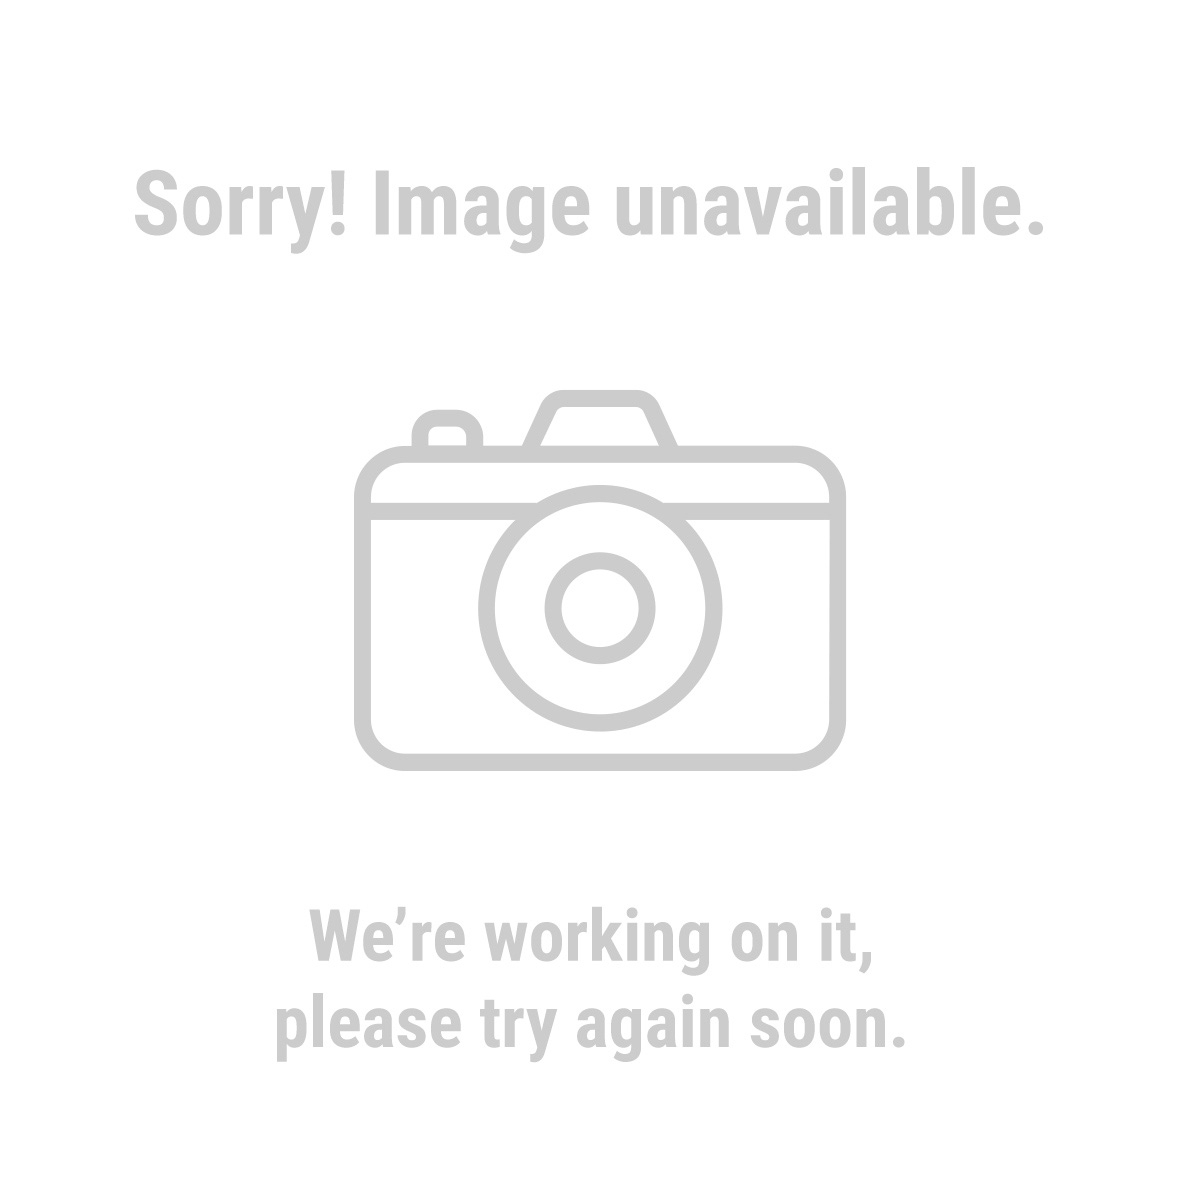 HFT 62513 10 ft. x 10 ft. Popup Canopy